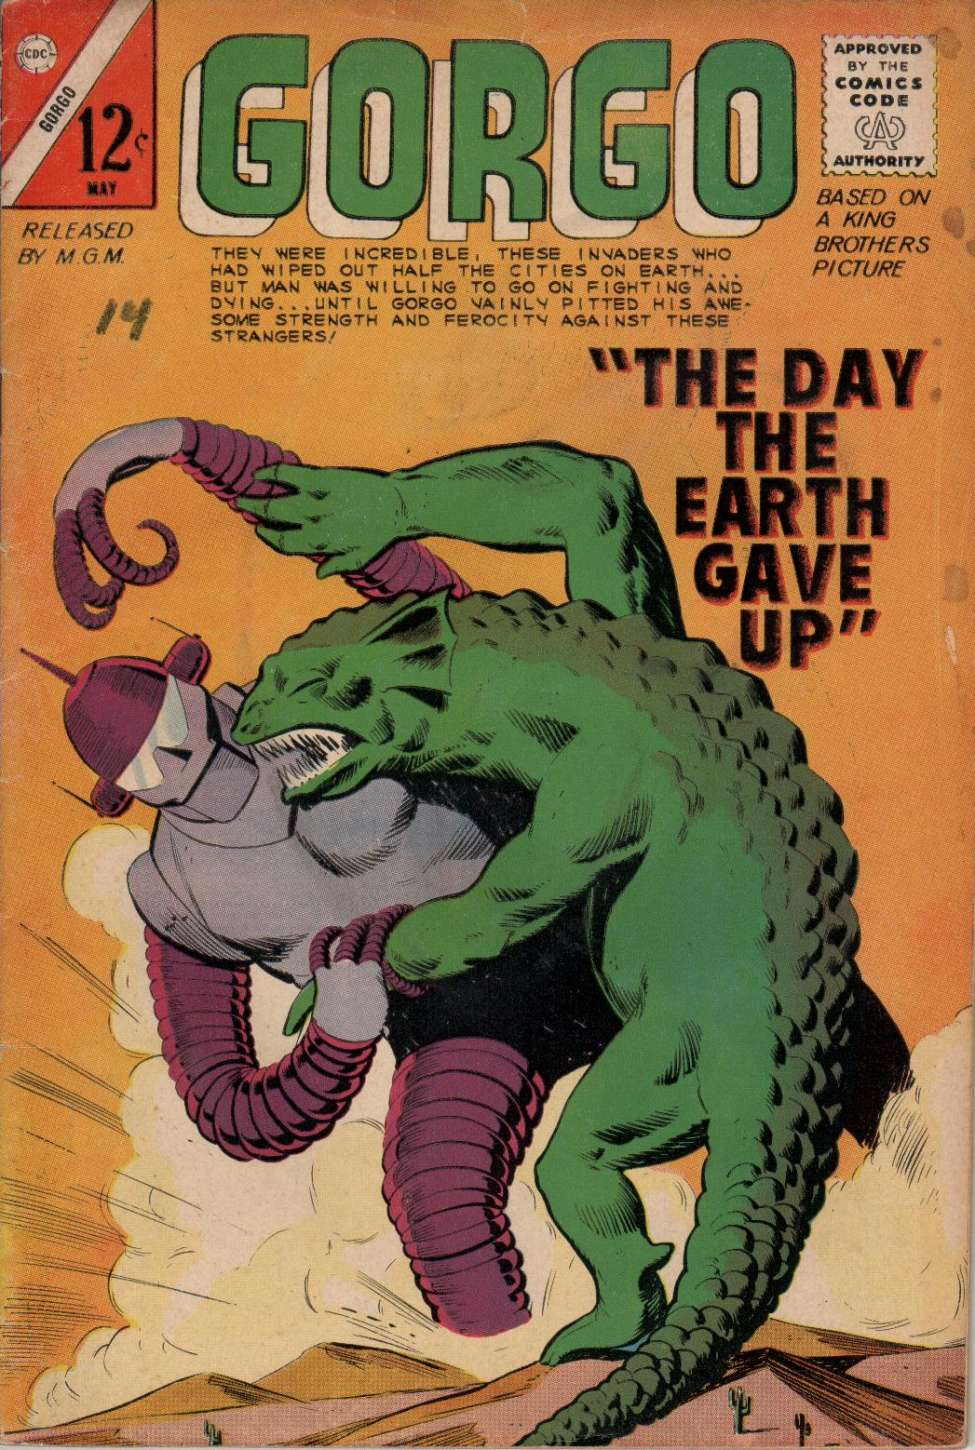 Comic Book Cover For Gorgo #18